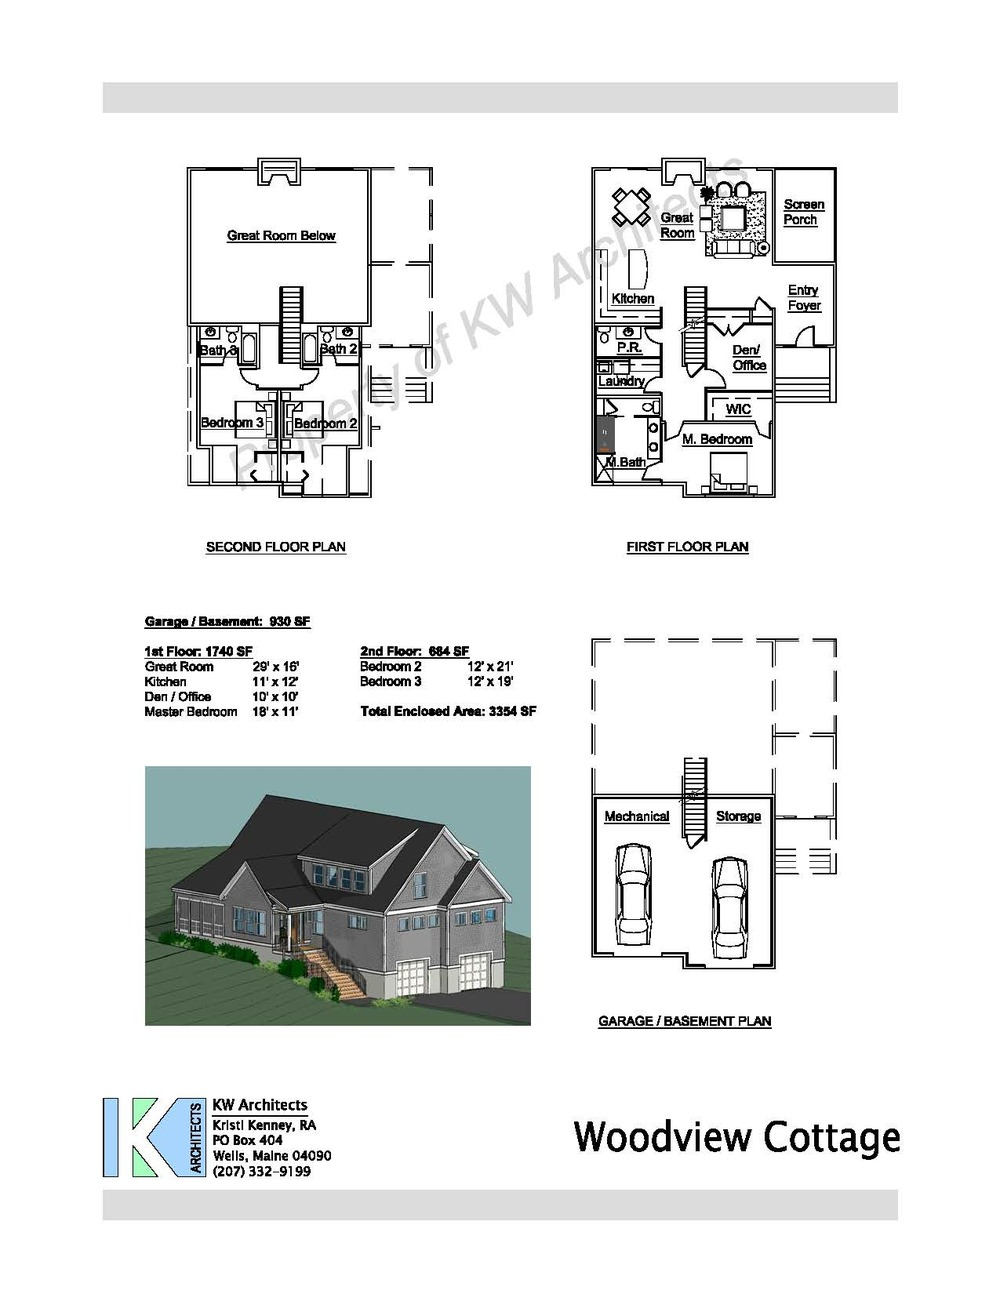 Woodview Cottage Marketing Sheet.jpg